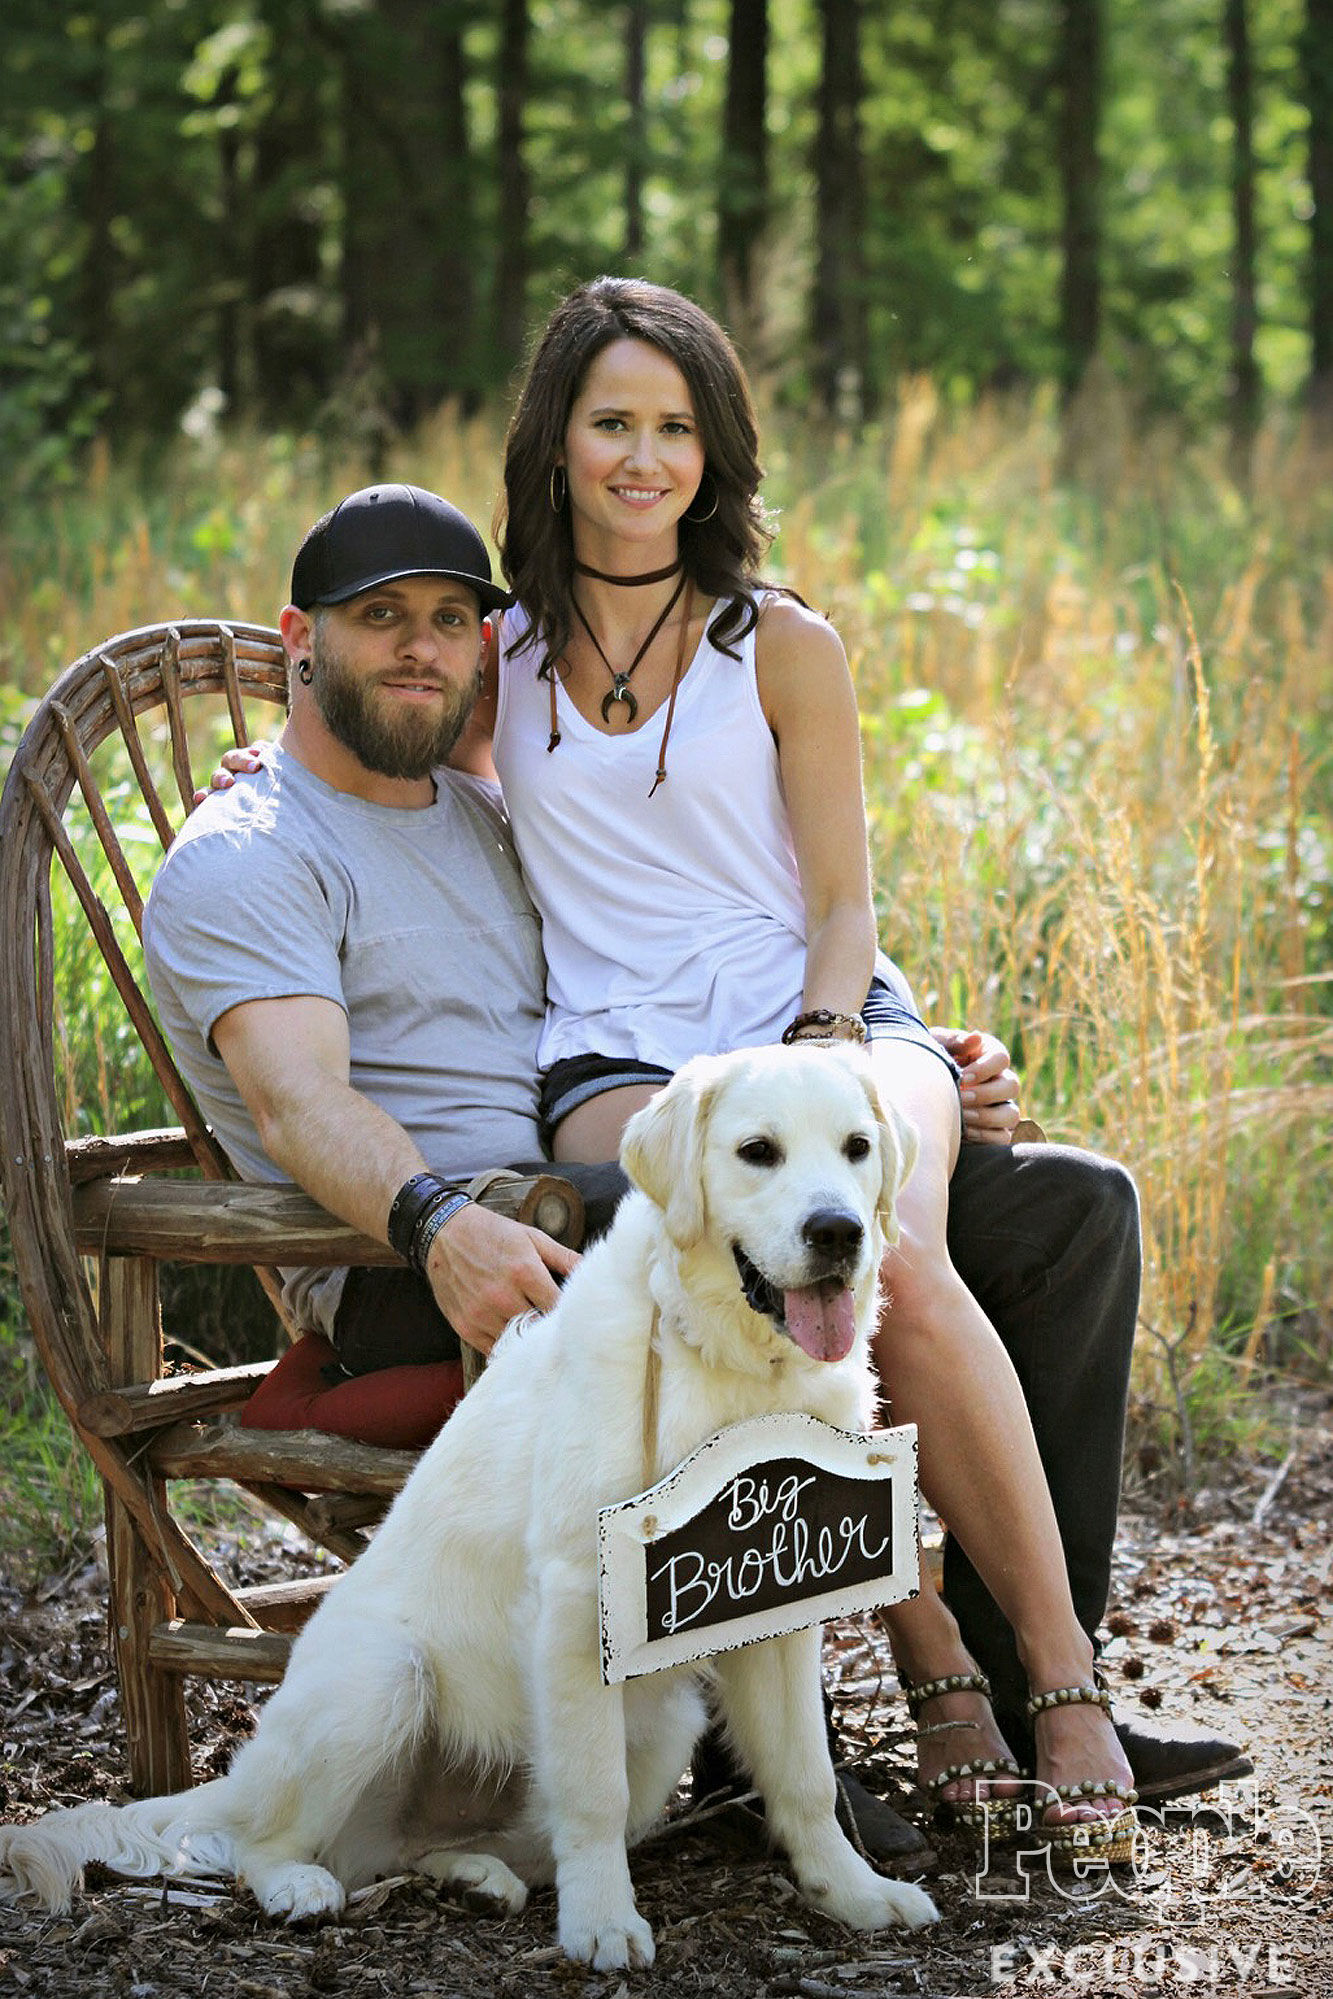 Baby (Finally) on the Way for Brantley Gilbert and Wife After Fertility Struggle: 'It's an Answer to a Prayer'